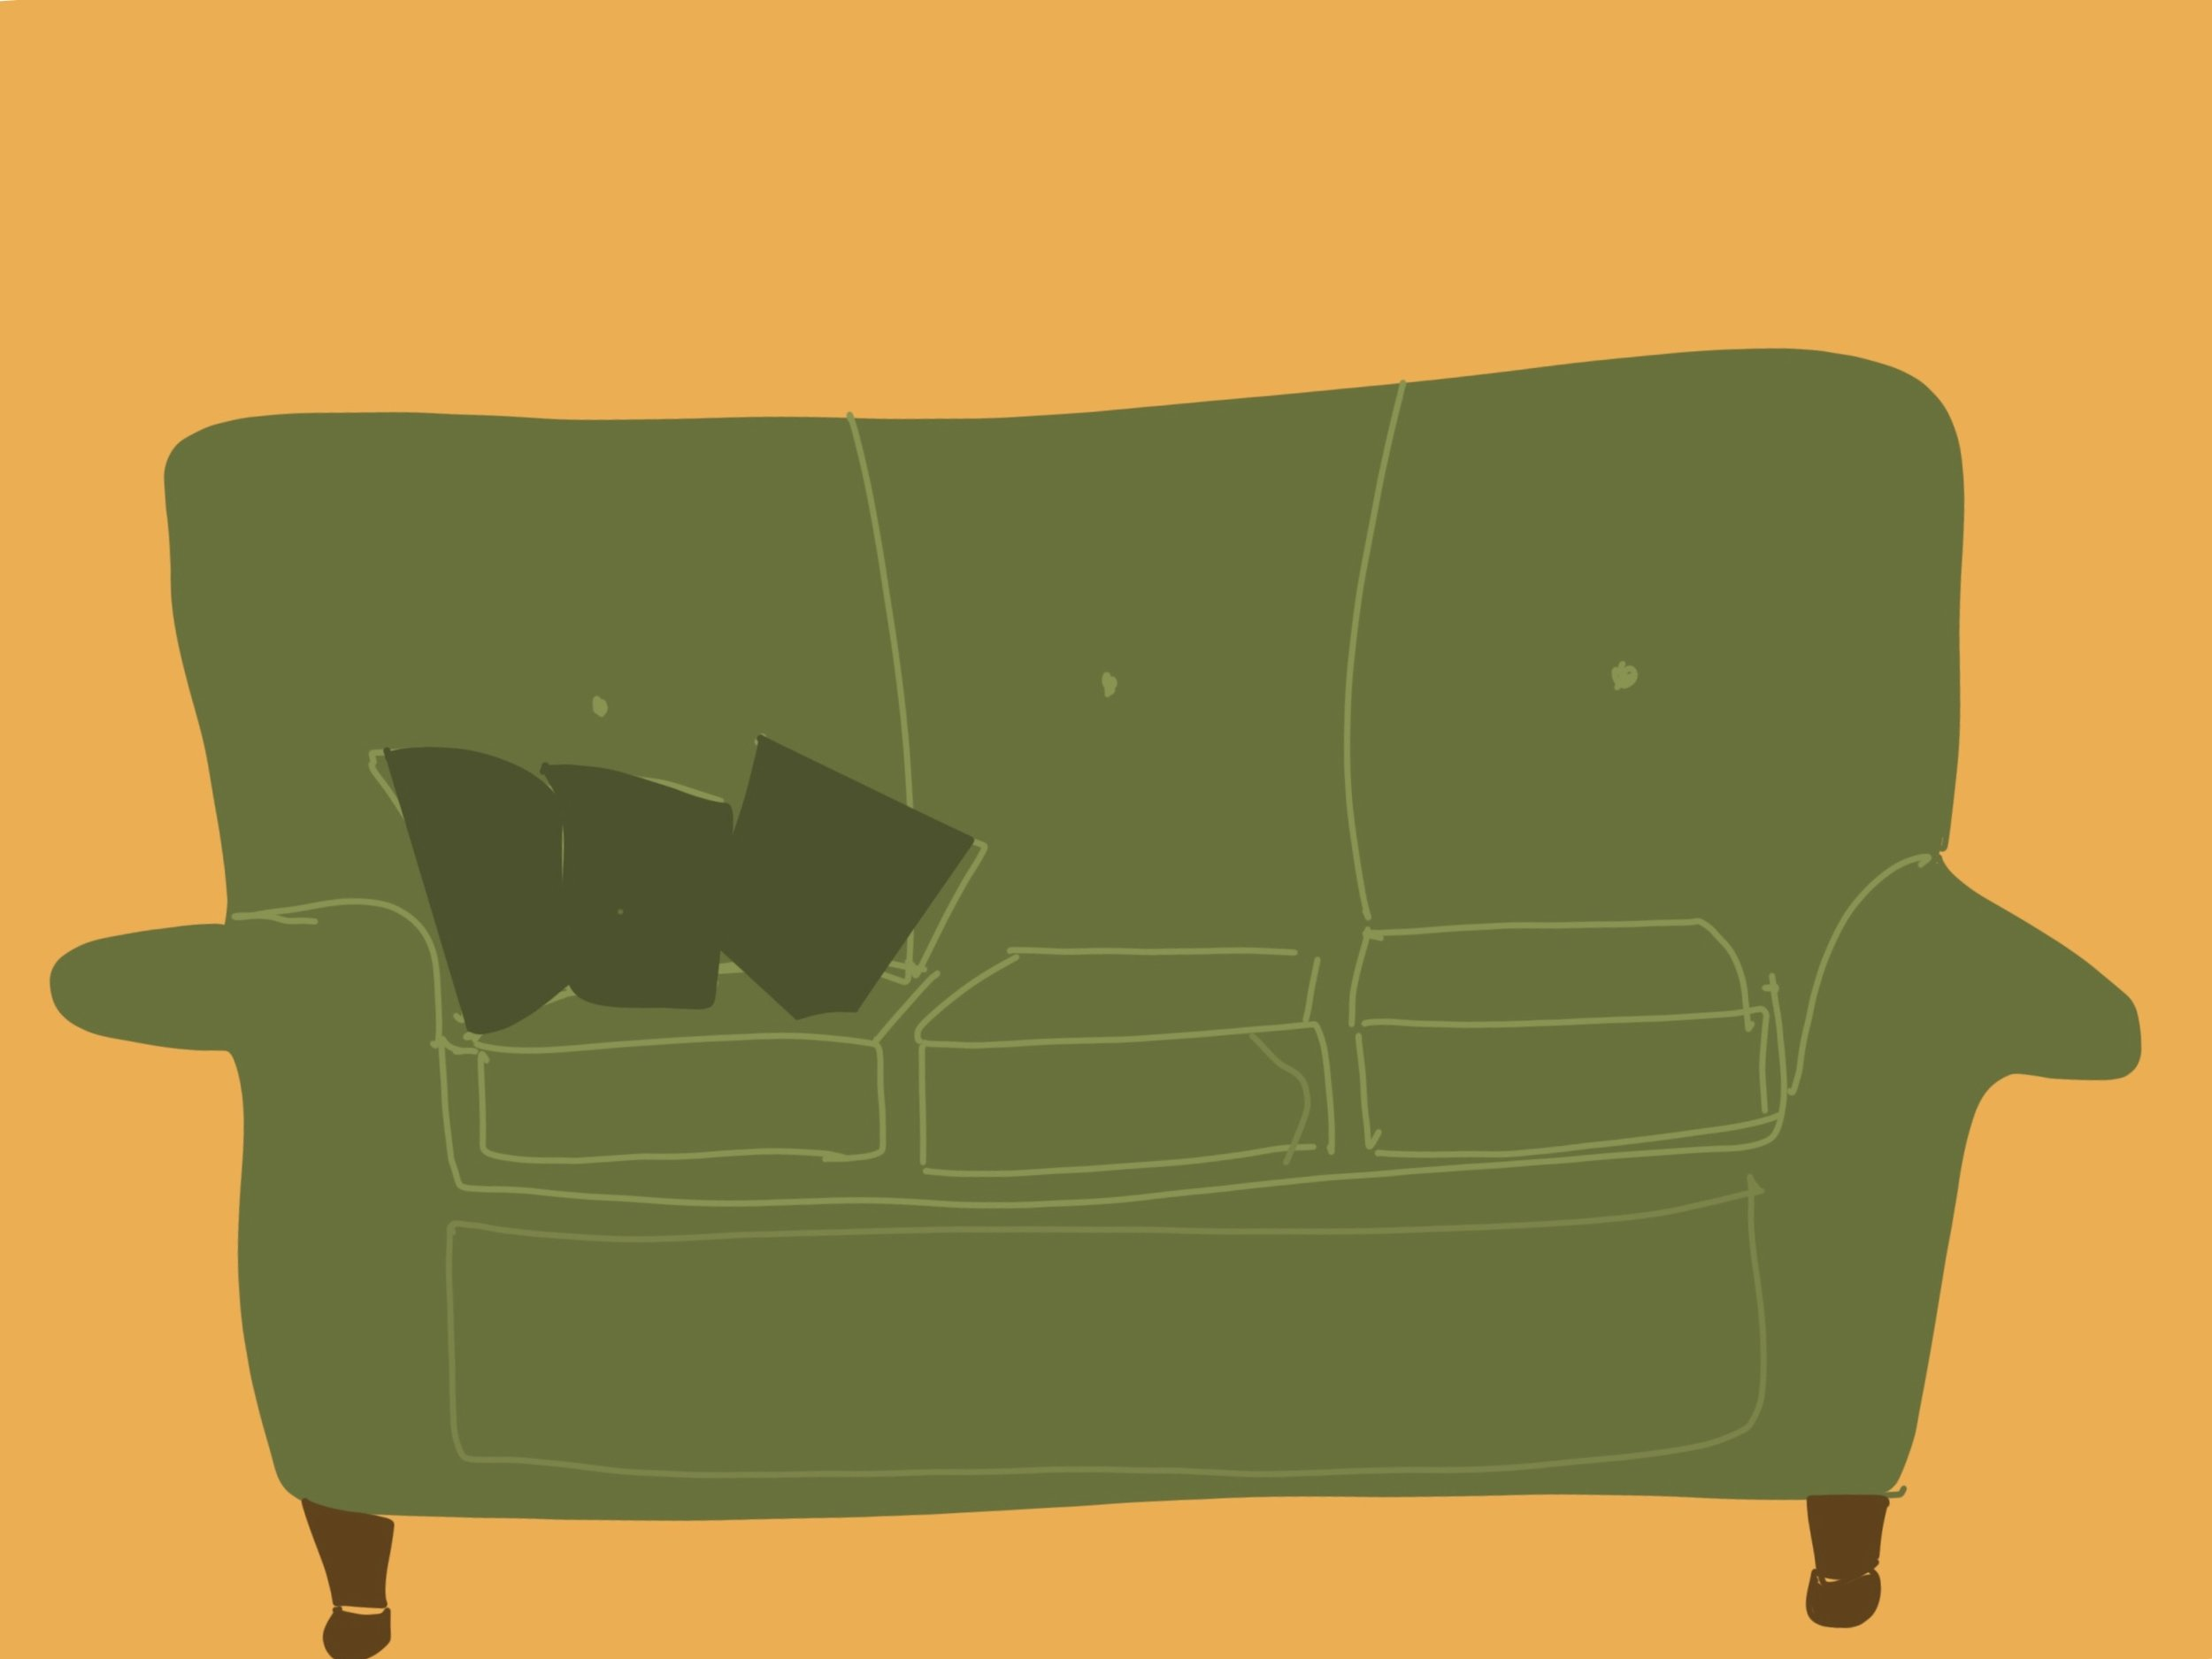 My mother's couch